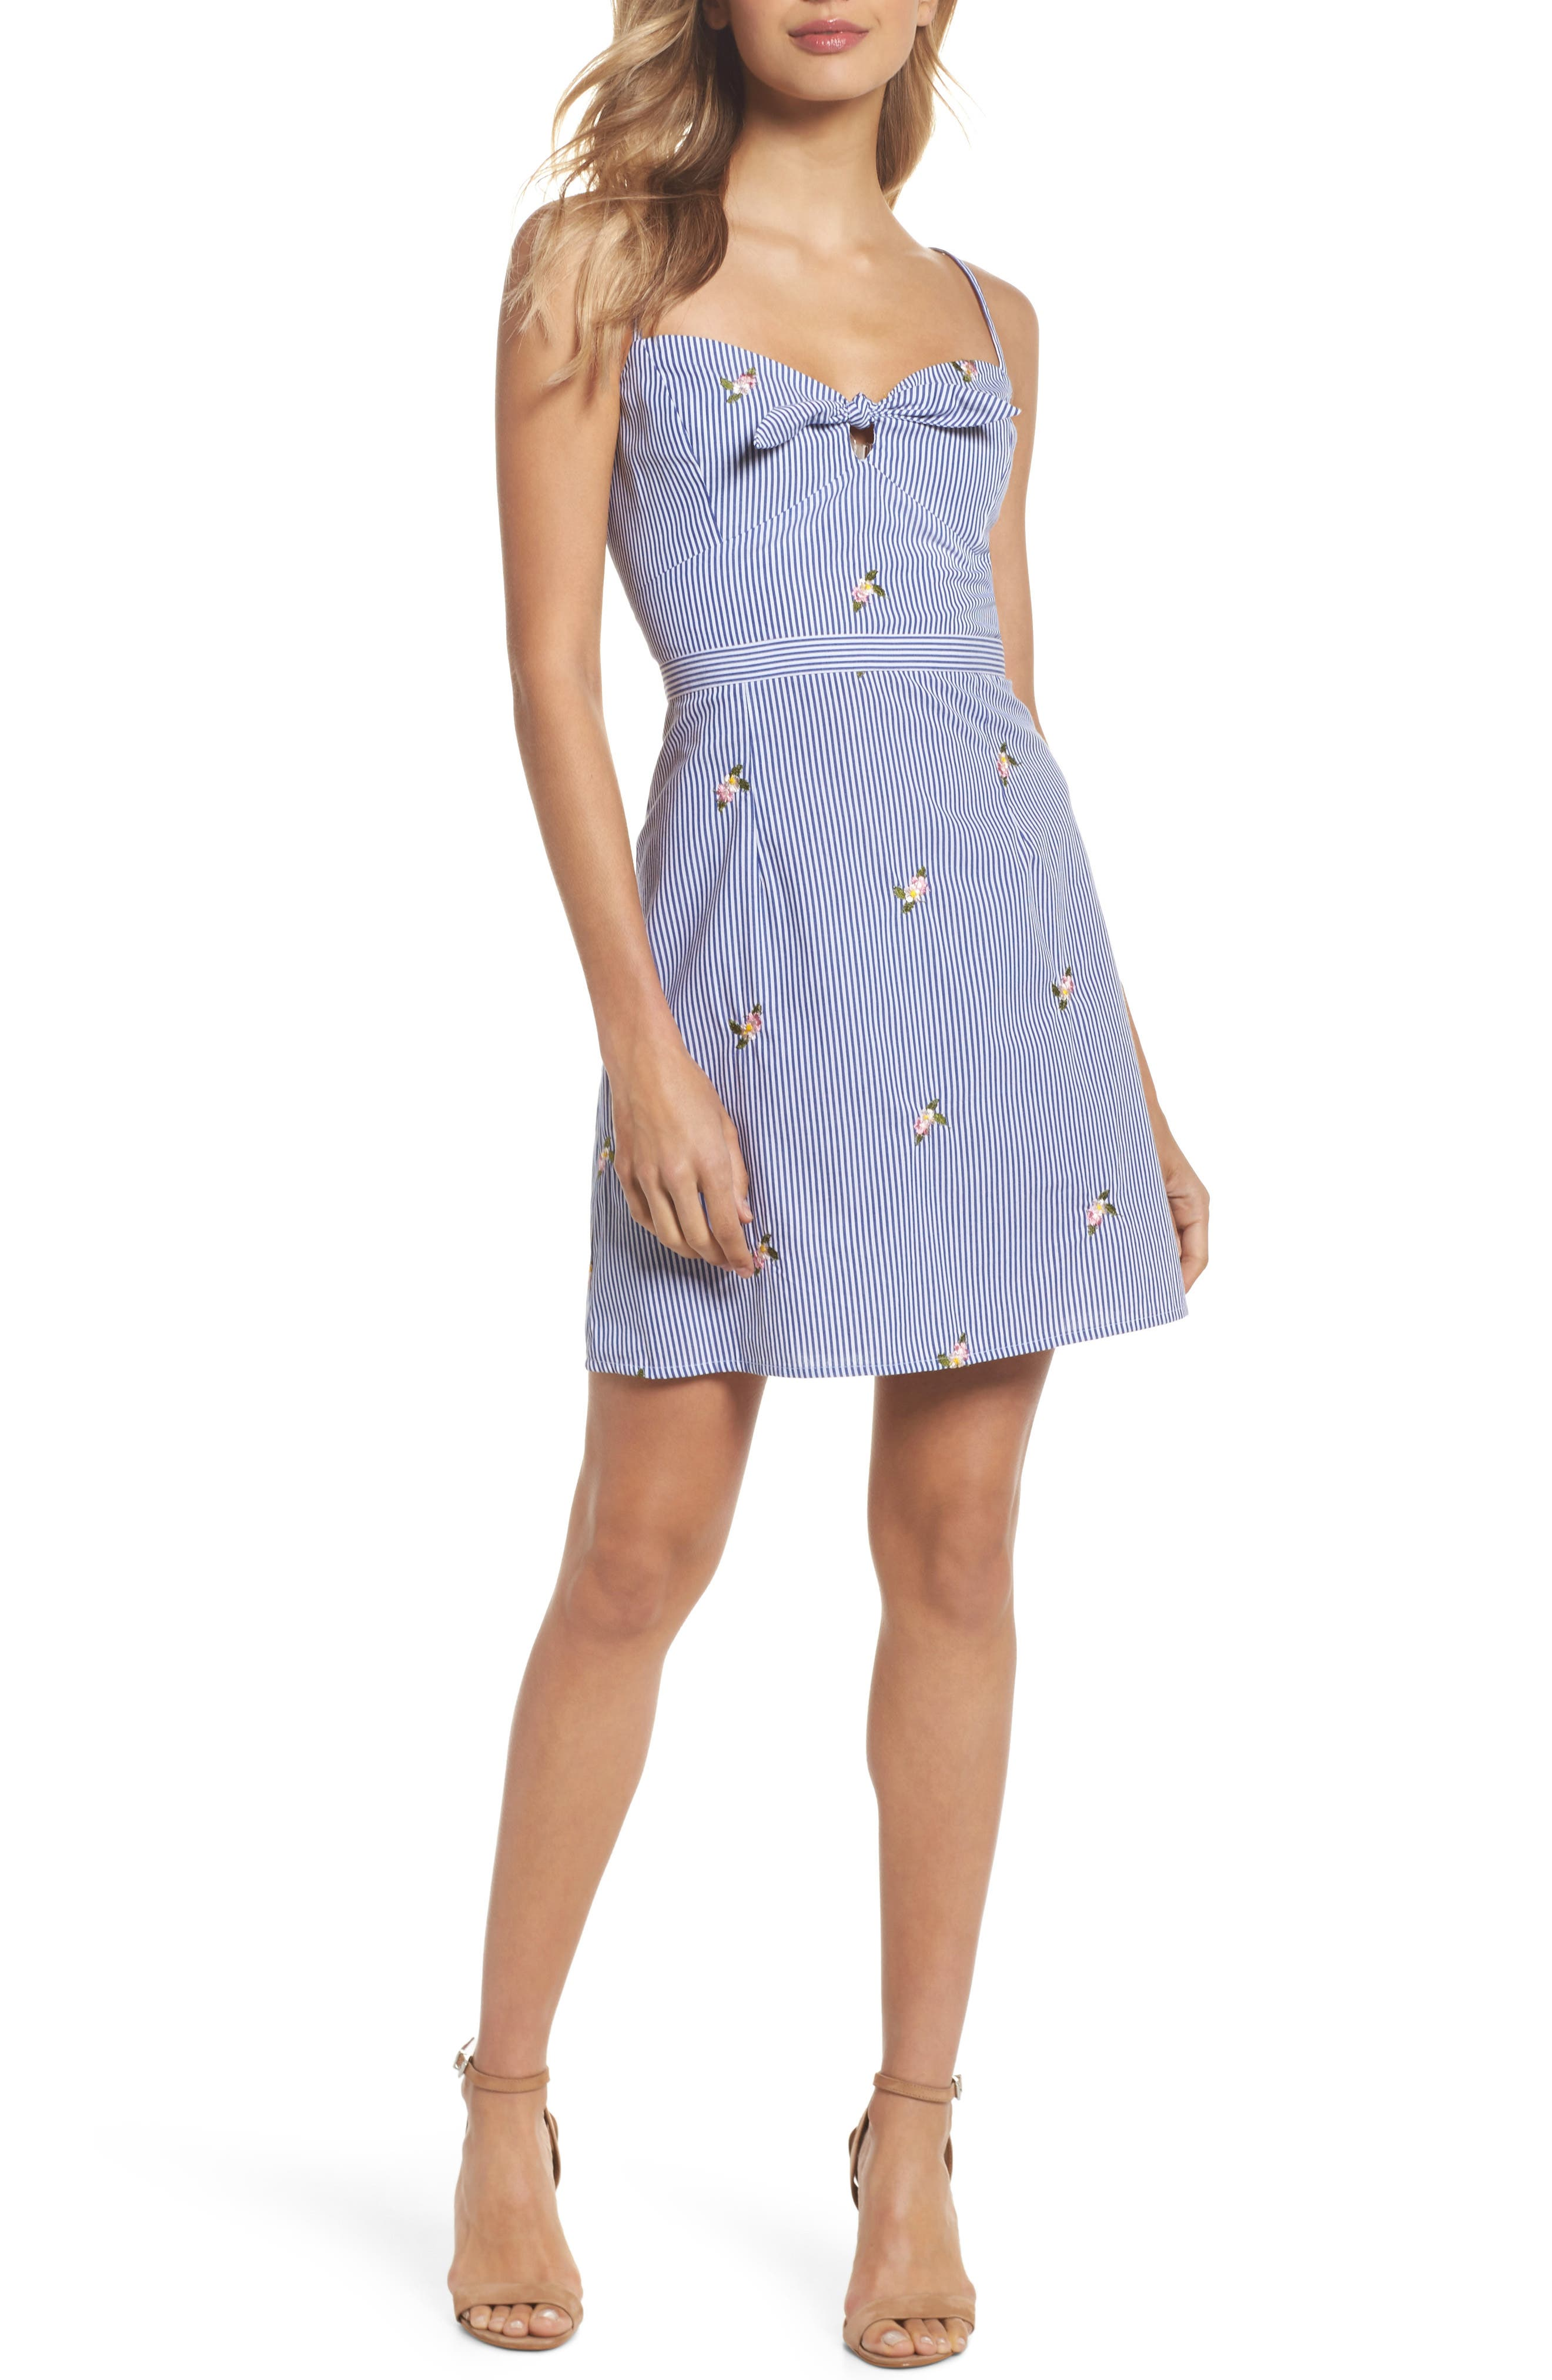 CLOVER AND SLOANE Stripe Bow Front Sundress, Main, color, 461